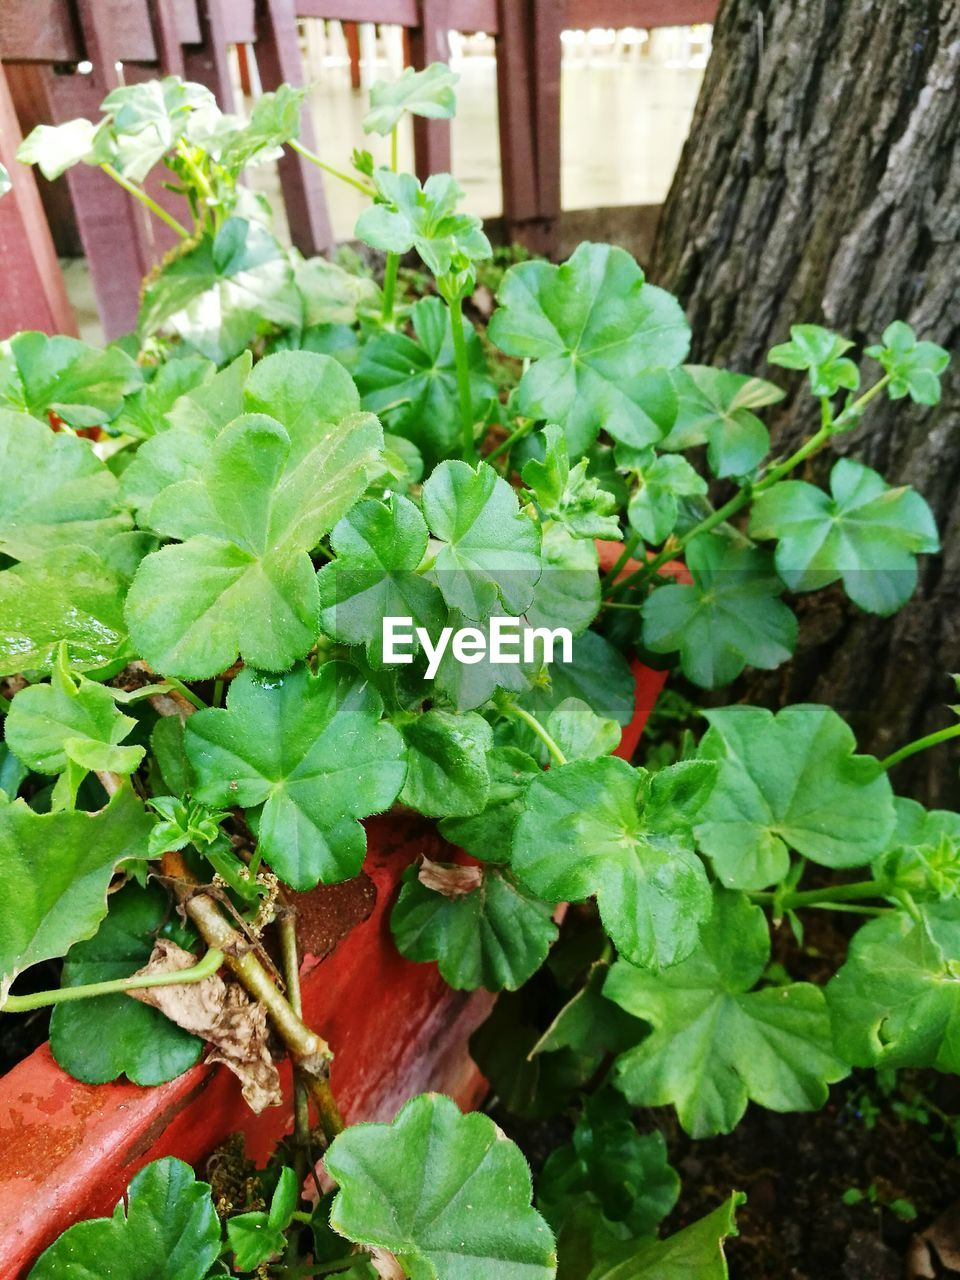 leaf, growth, plant, green color, day, outdoors, nature, no people, freshness, close-up, ivy, fragility, beauty in nature, food